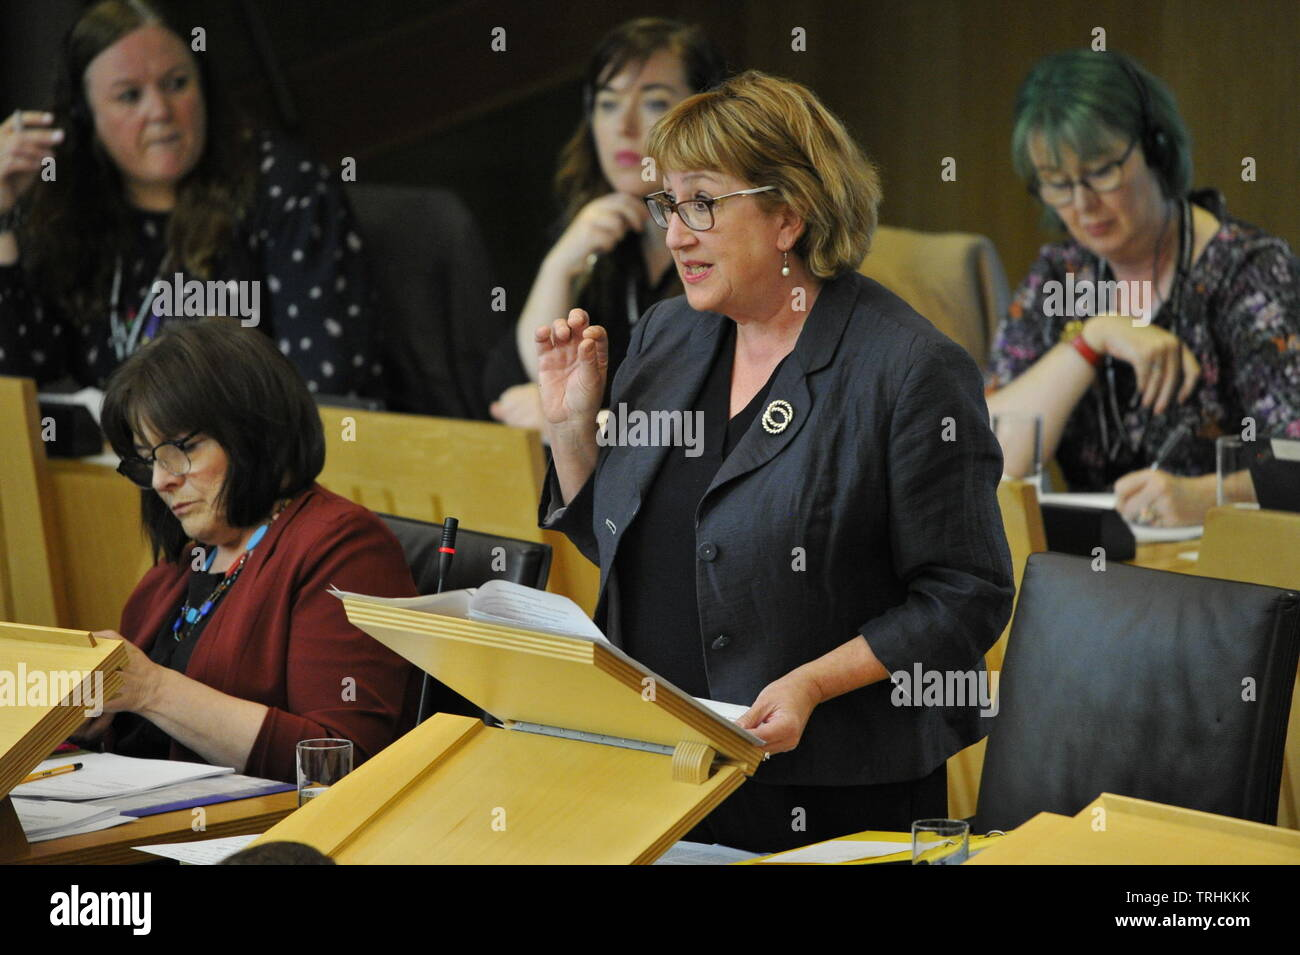 Edinburgh, UK. 6 June 2019. PICTURED: Jeane Freeman (left) and, Annabelle Ewing (right) Afternoon session in the chamber of the Scottish Parliament. Stage 3 Proceedings: Fuel Poverty (Target, Definition and Strategy) Bill. Credit: Colin Fisher/Alamy Live News Stock Photo